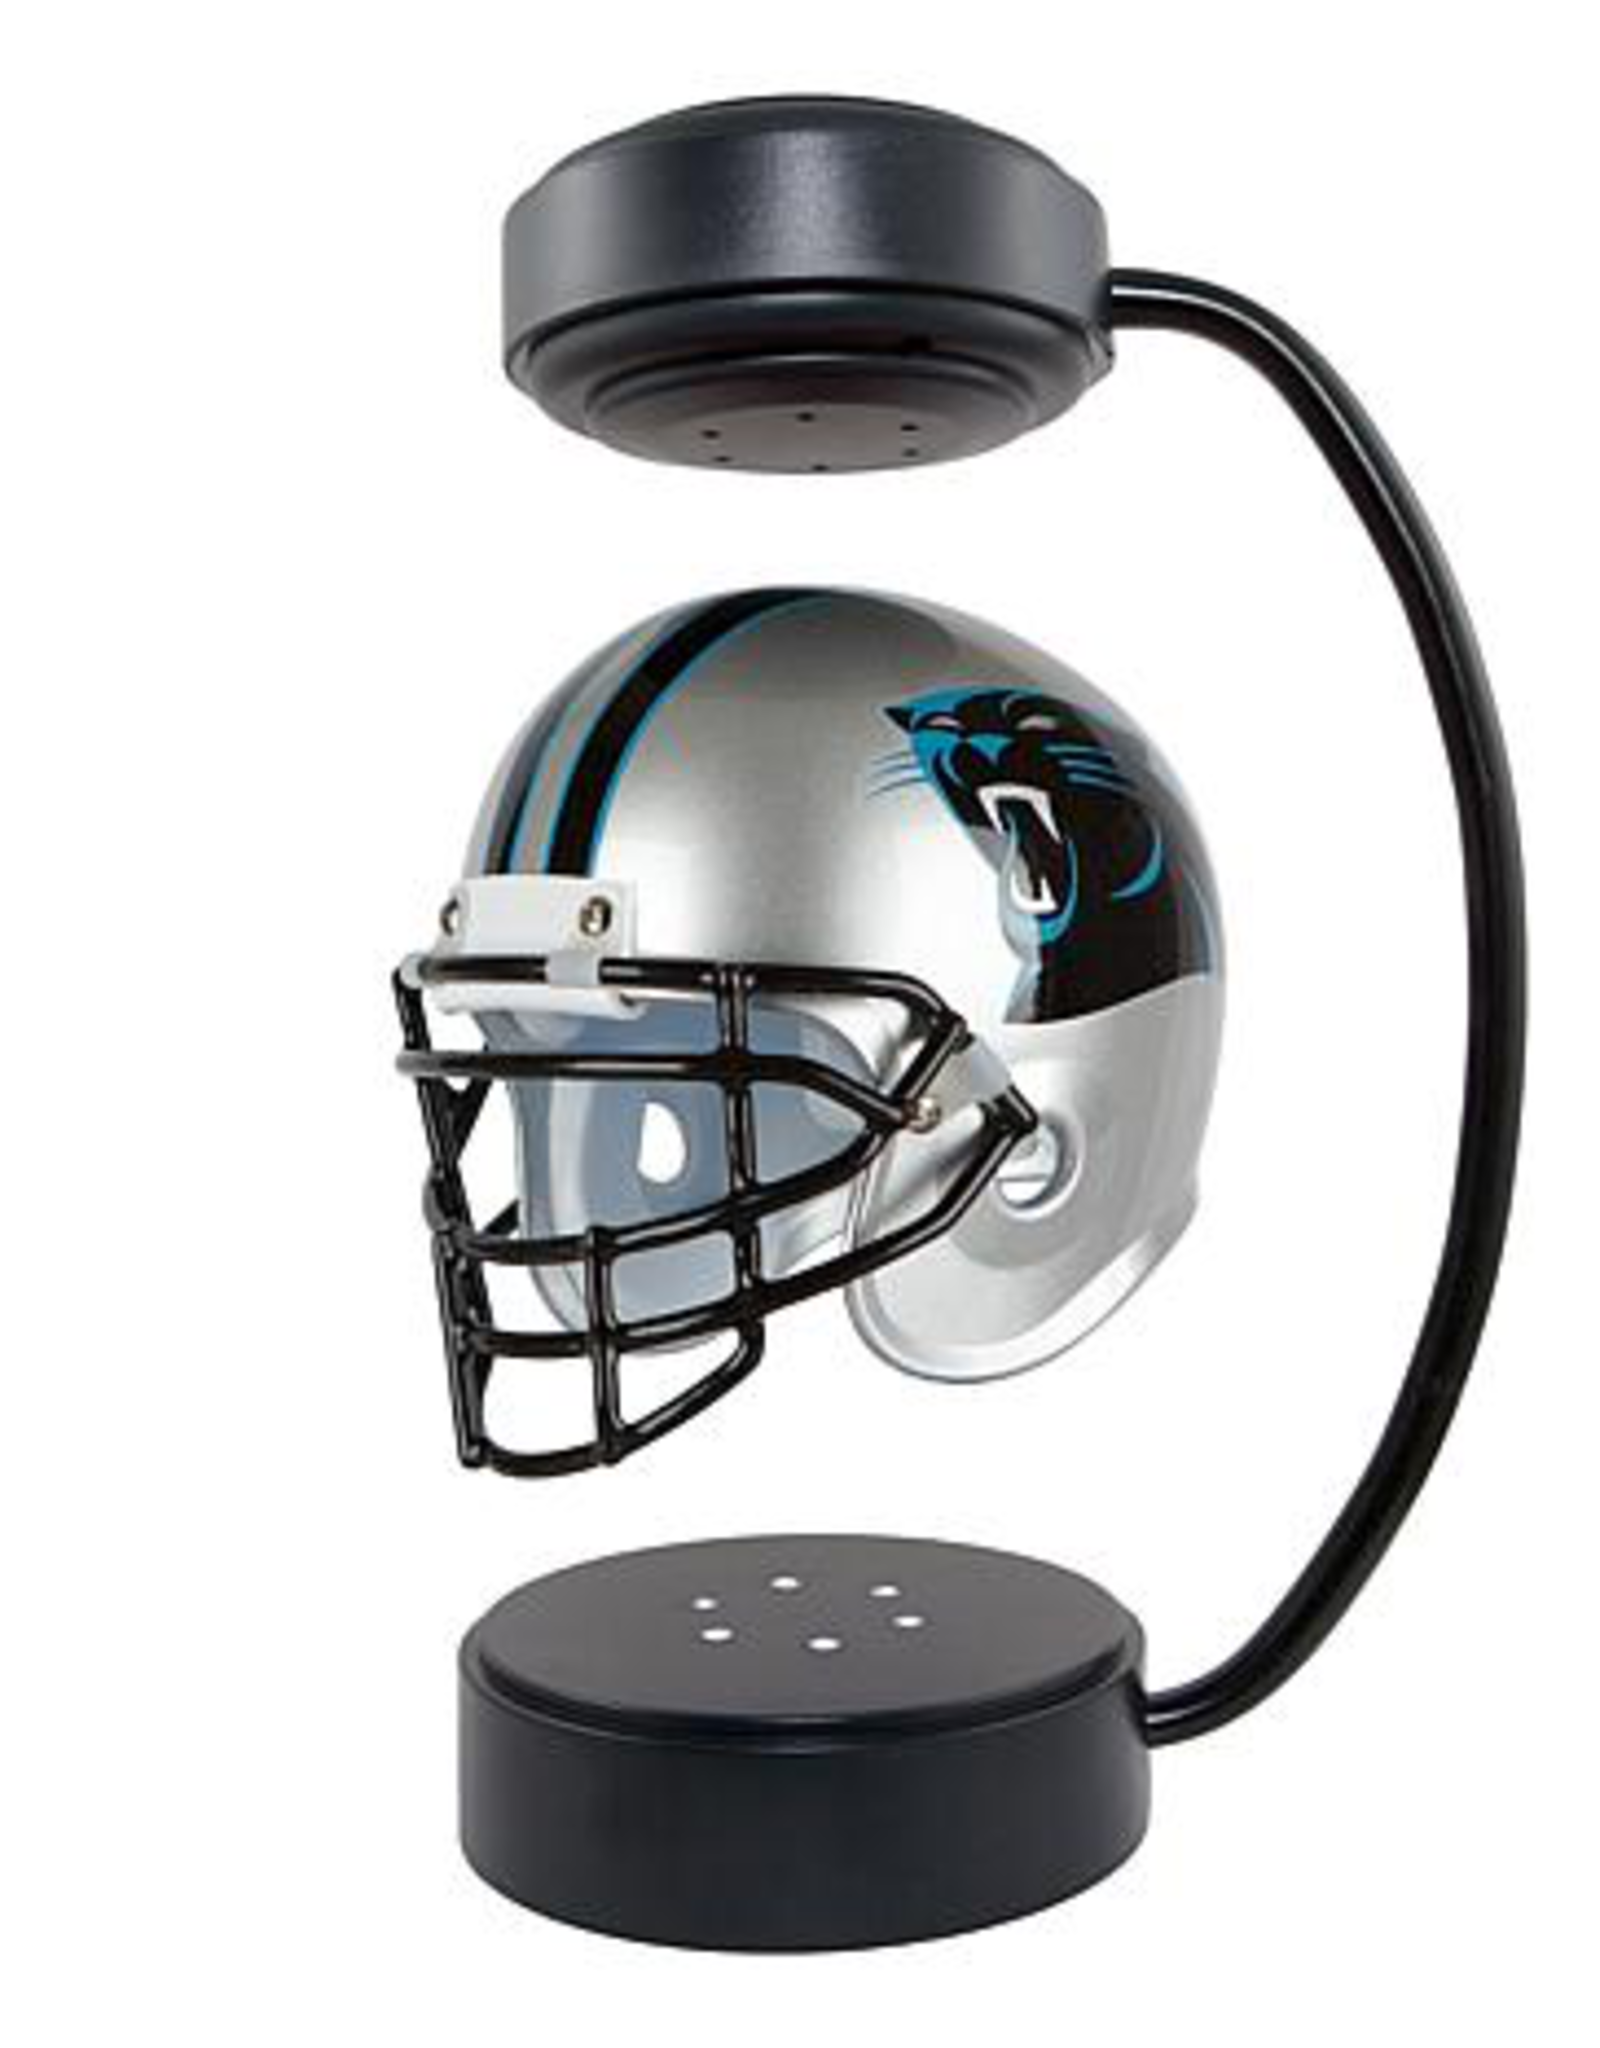 HOVER HELMETS Carolina Panthers Collectible Levitating Hover Helmet